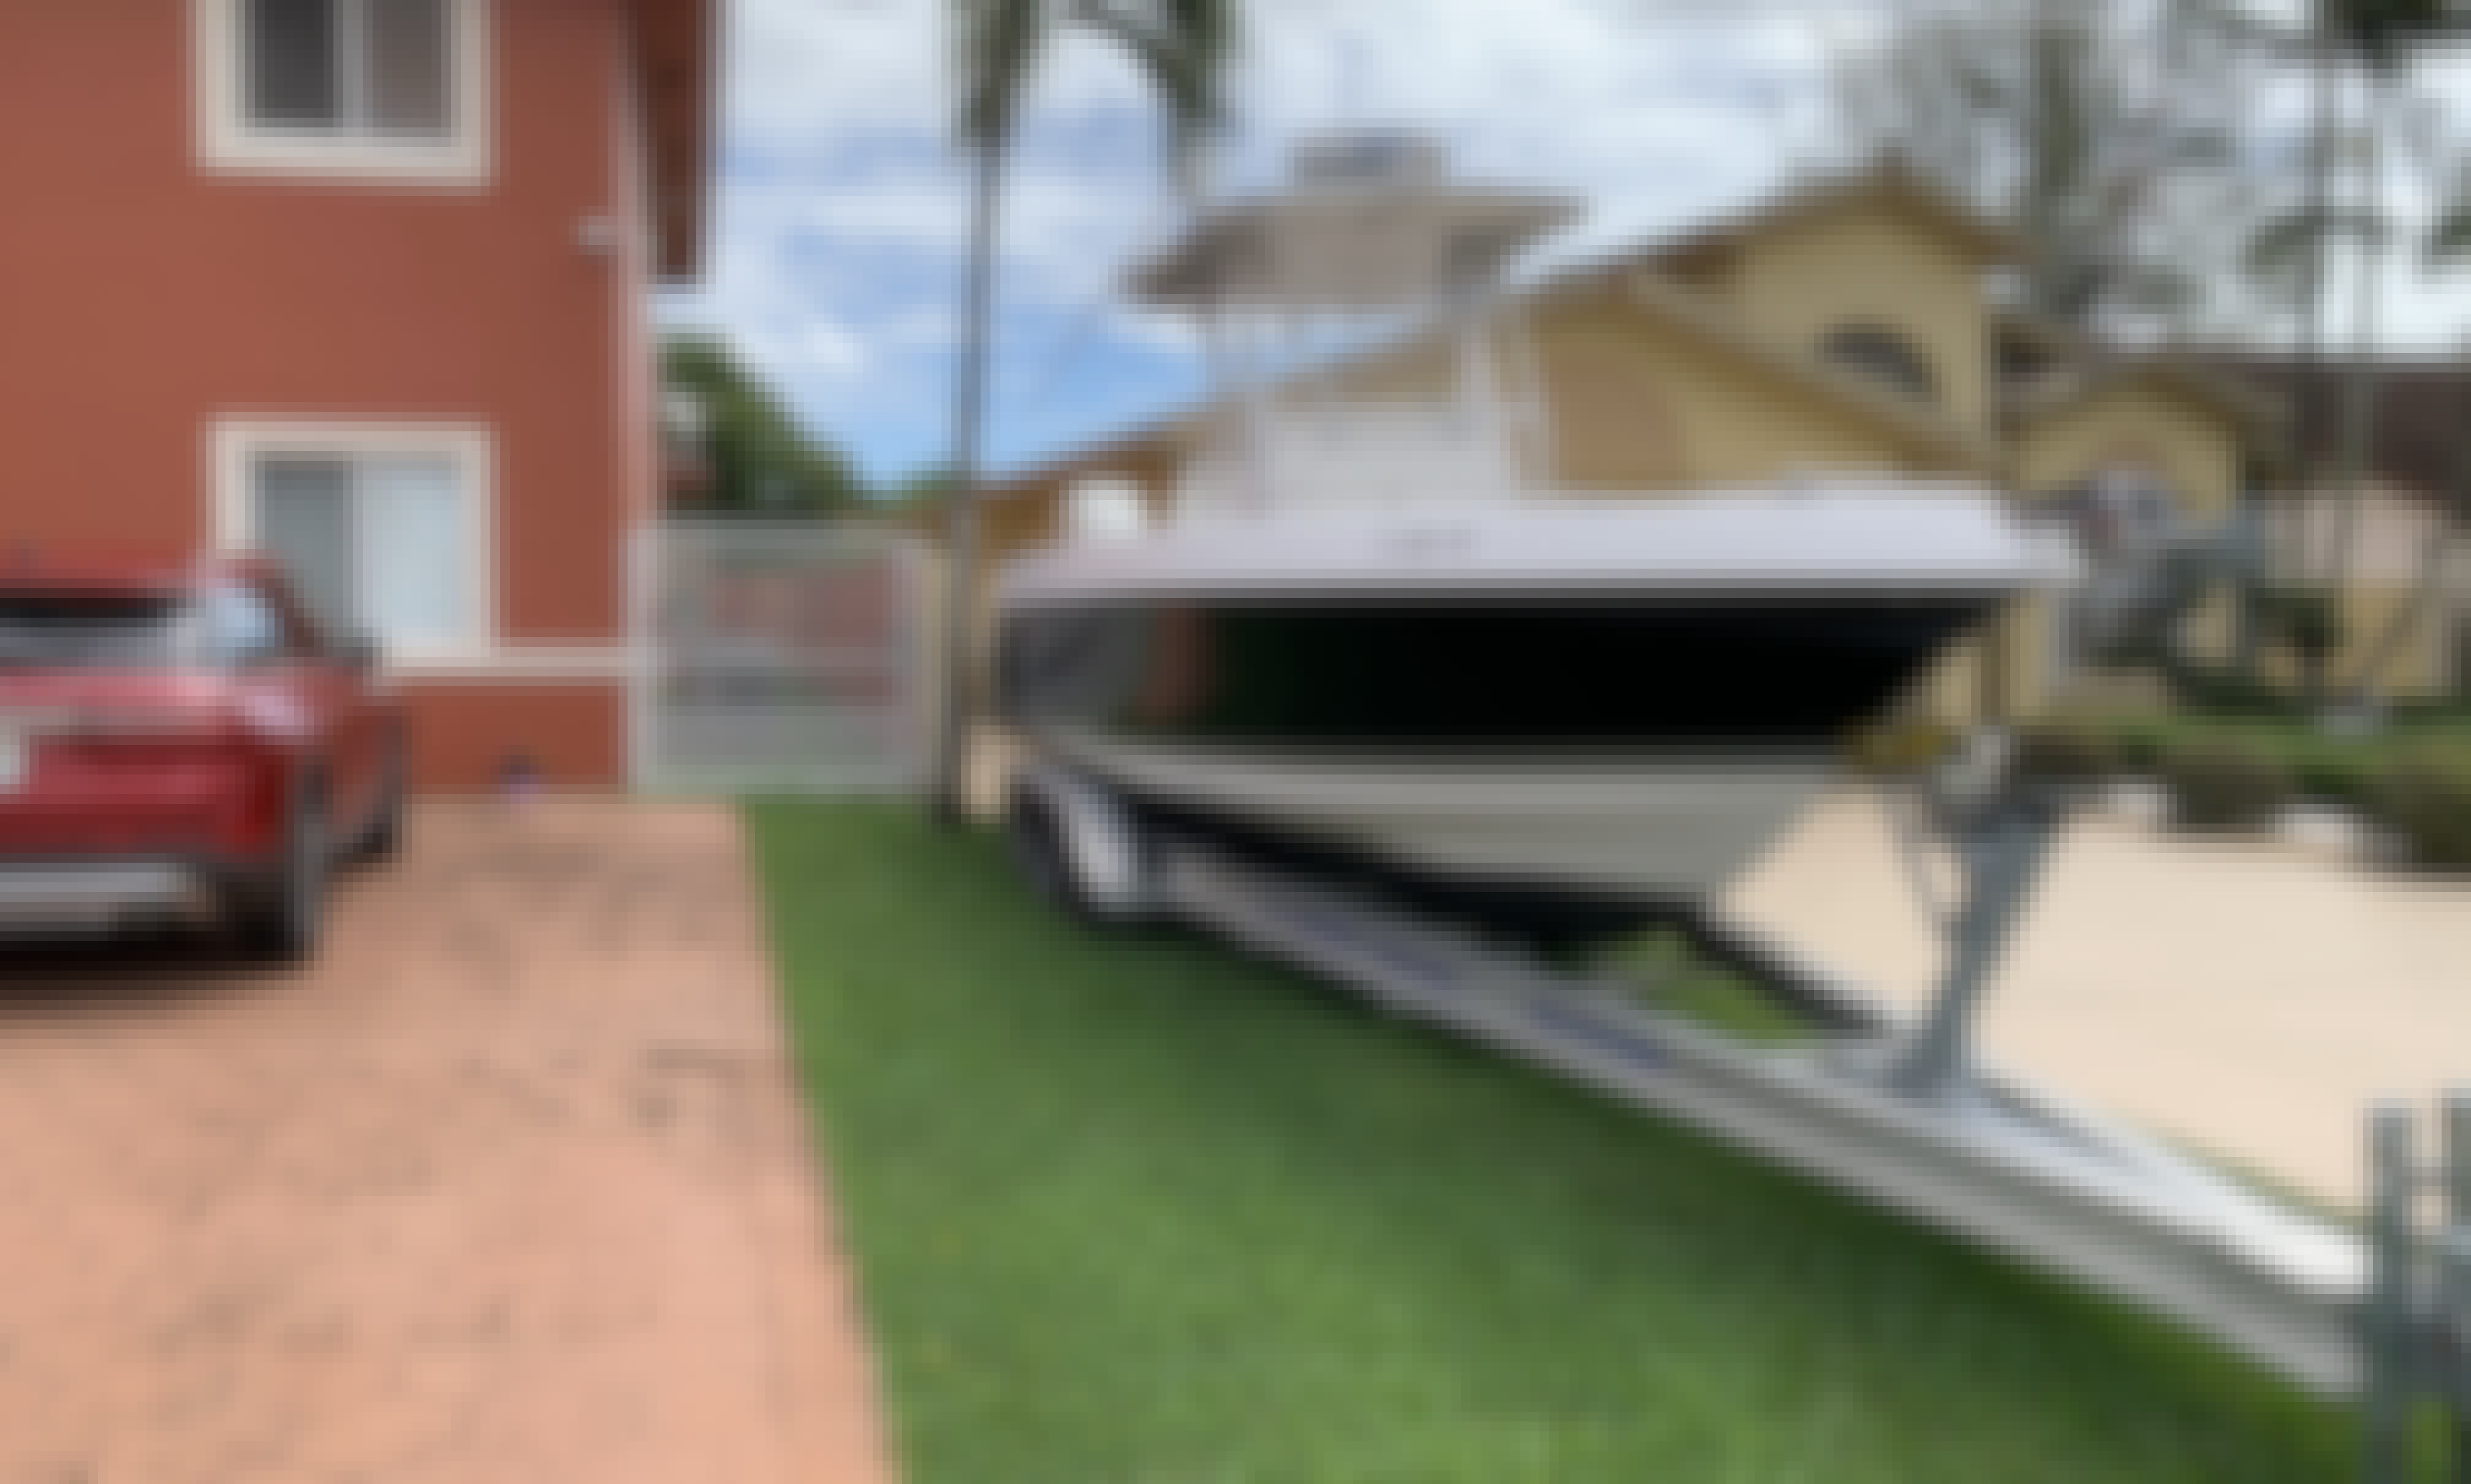 2008 proliner 29 super sport 10 guests Captain include with full,day rental